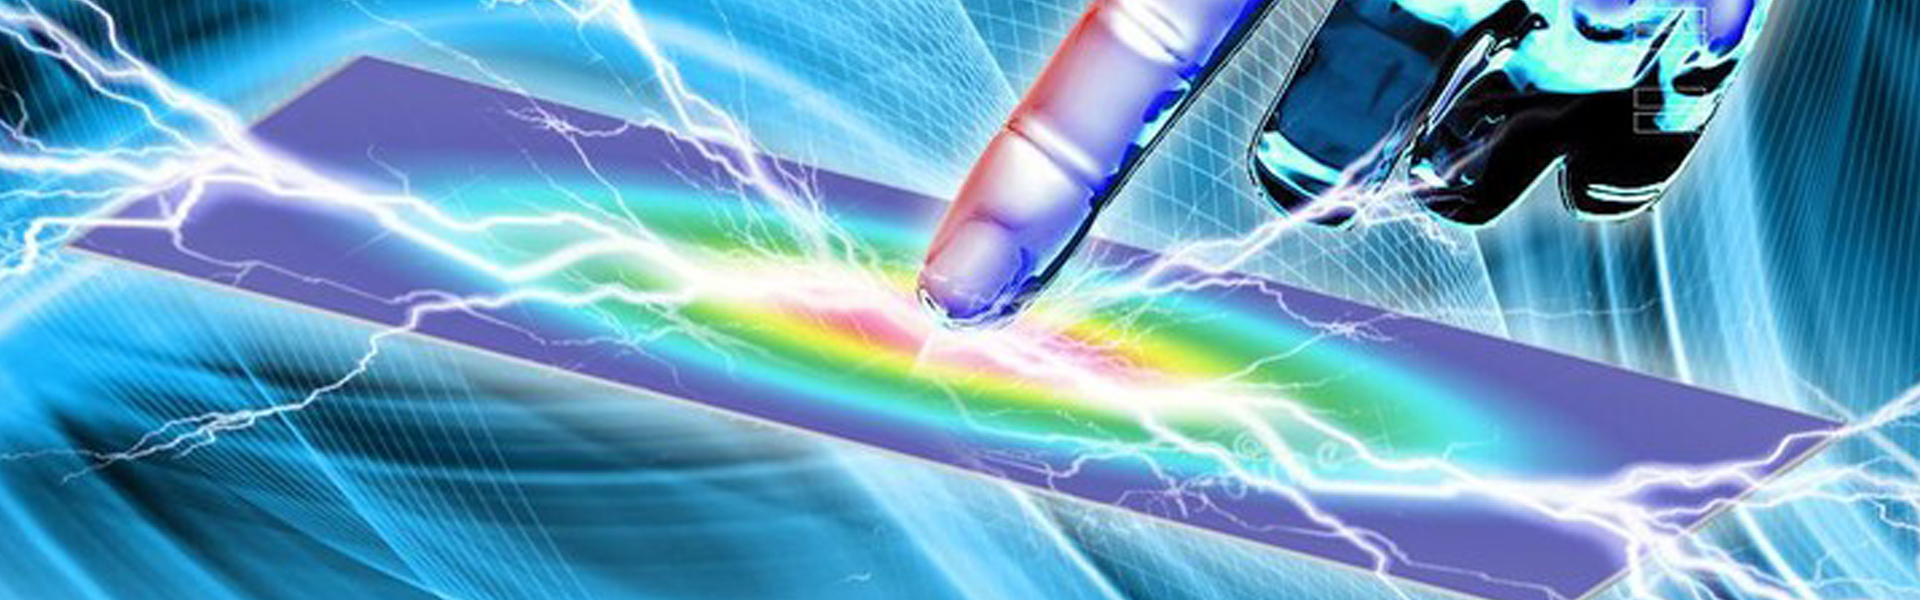 Low-frequency mechanical energy harvesting could provide as much as 40 percent of the power requirements for next generation sma